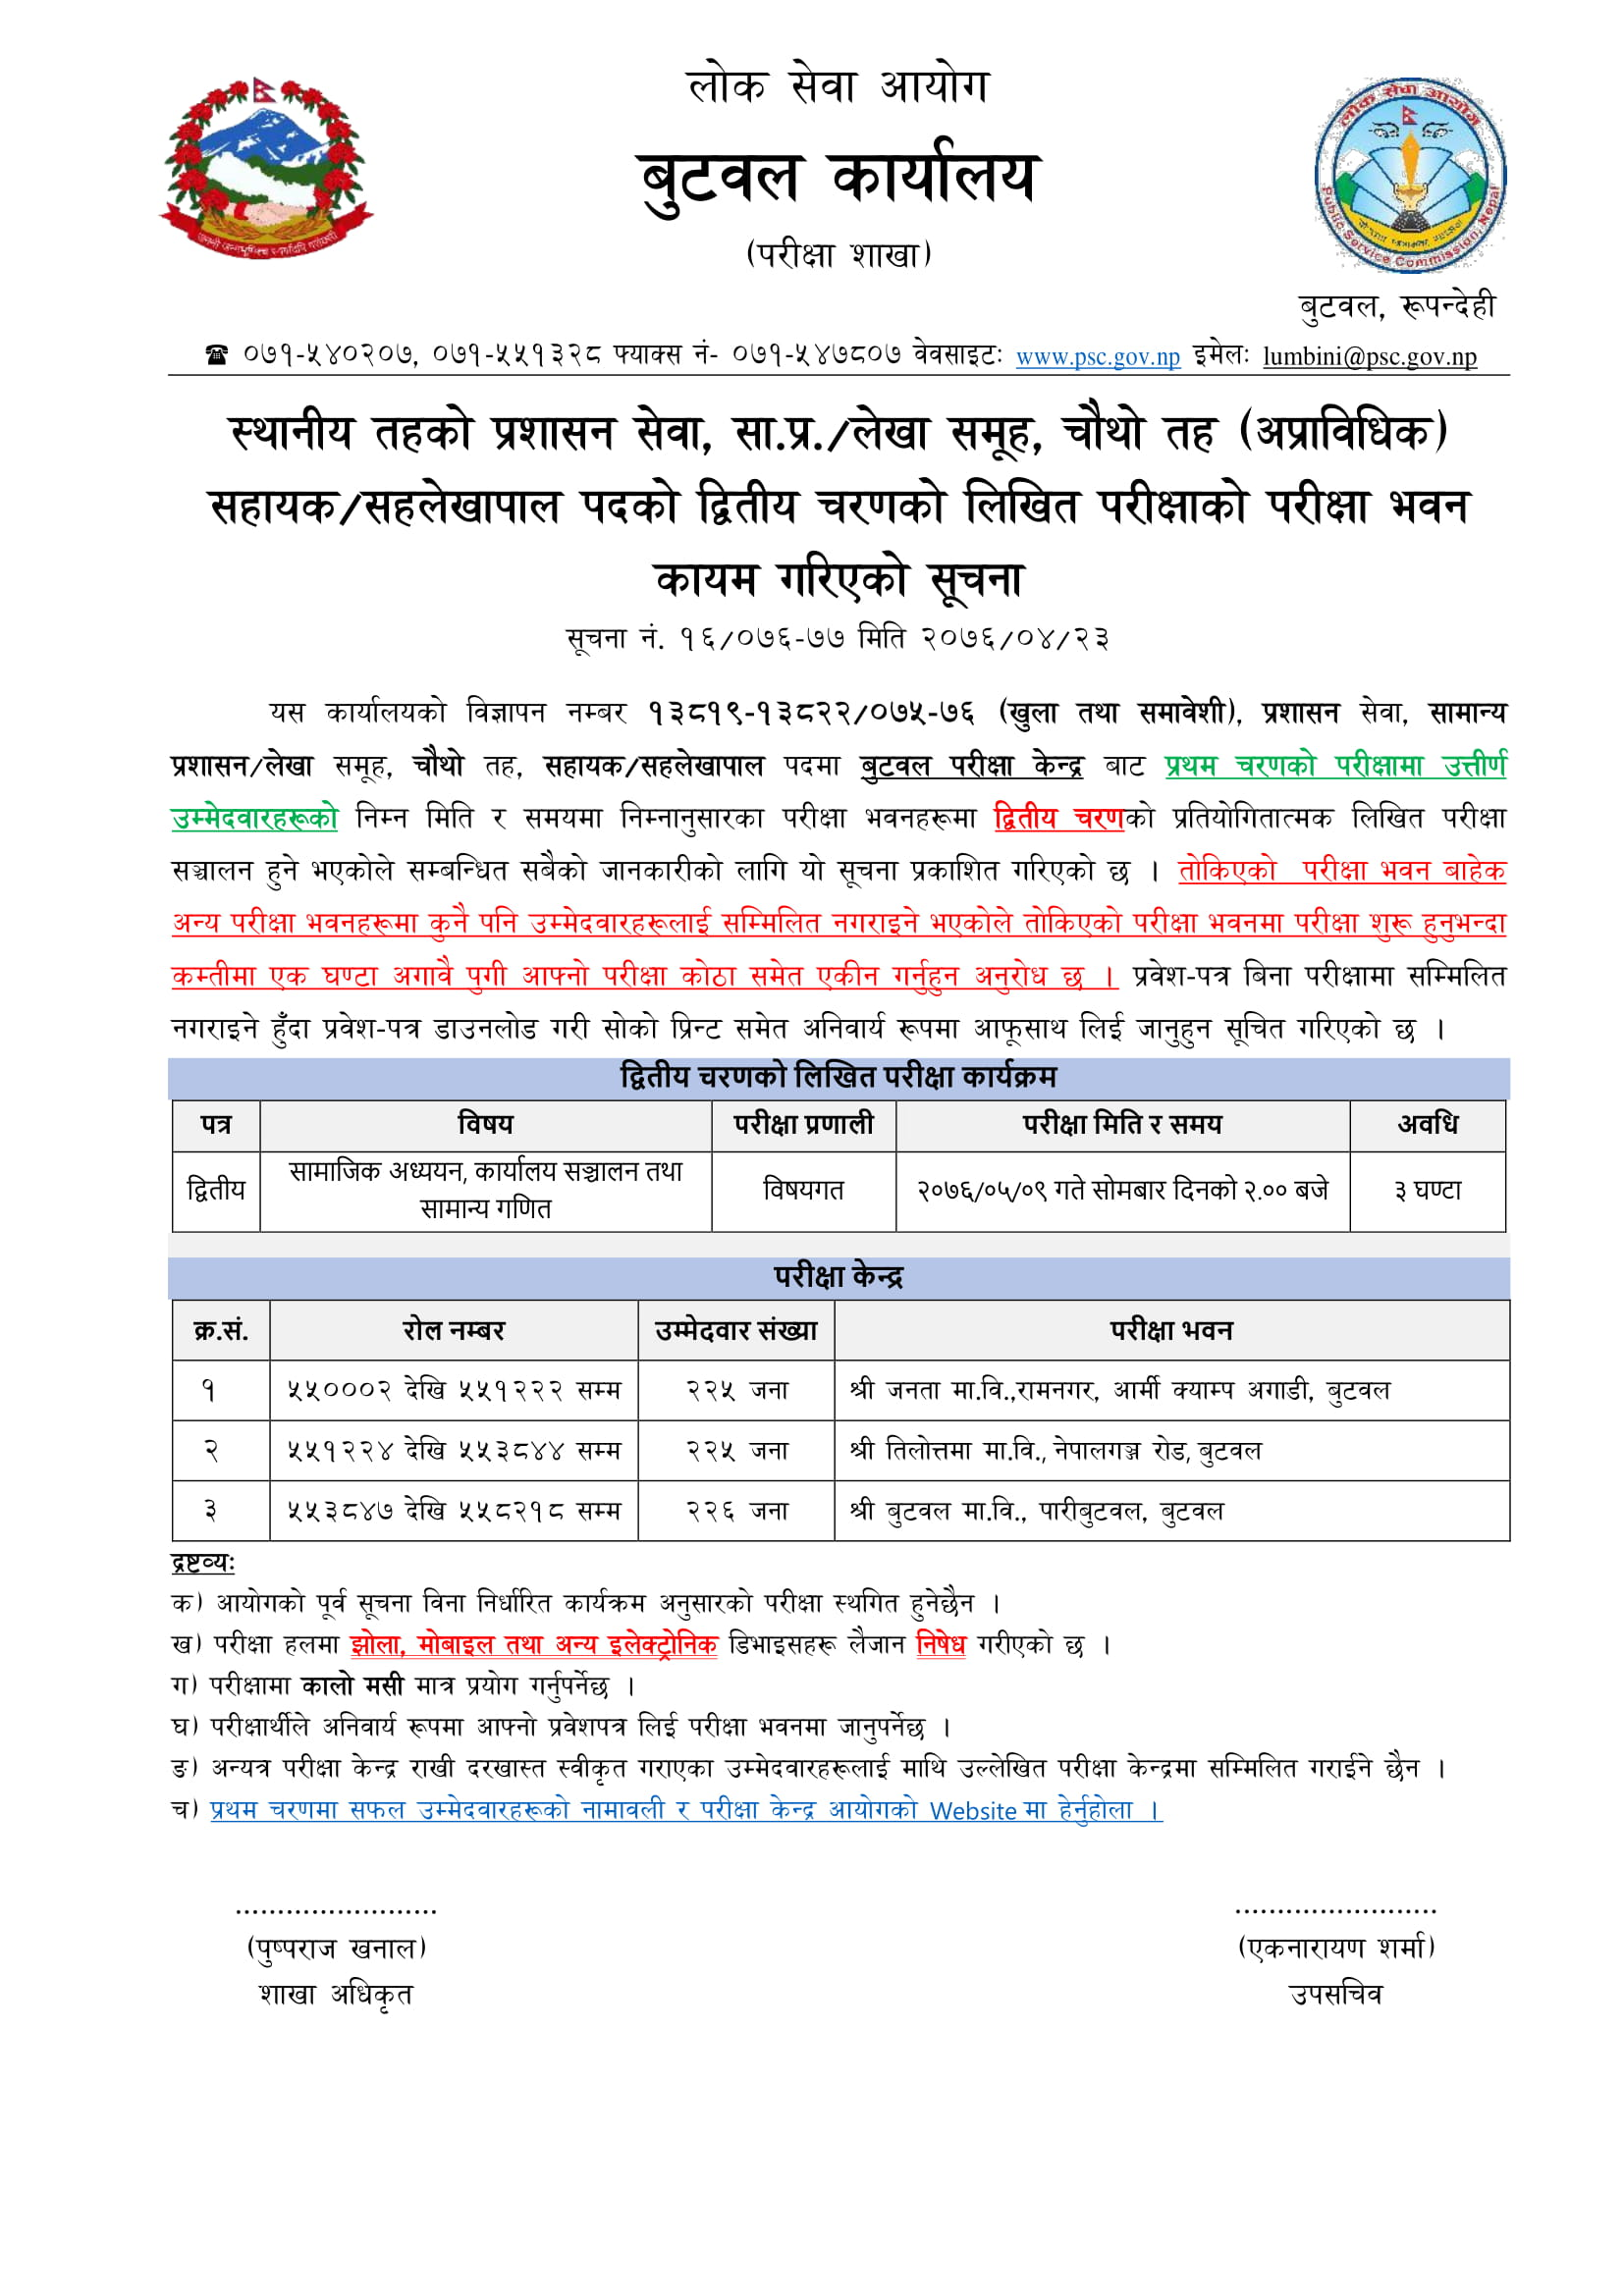 Kharidar Second Paper Exam Center, Kharidar Second Paper Exam Center butawal, Kharidar Second Paper Exam Center 2076, Second Paper Exam Center 2076, Second Paper Exam Center, Lok Sewa Aayog, Lok Sewa Aayog exam center, Lok Sewa Aayog Second Paper Exam Center, Lok Sewa Aayog Second Paper Exam Center 2076, Lok Sewa Aayog kharidar Exam Center, Lok Sewa Aayog kharidar, psc eam center, psc Nepal, psc exam center 2076, psc Nepal exam center, psc kharidar exam center, psc kharidar exam center 2076, psc haridar exam center, psc kharidar second paper exam center, kharidar exam center butawal, Kharidar Second Paper Exam Center butawal, psc exam center butawal, lok sewa exam center butawal, lok sewa aayog exam center butawal, Second Paper Exam Center butawal, 4th level exam center, lok sewa aayog 4th level exam center,